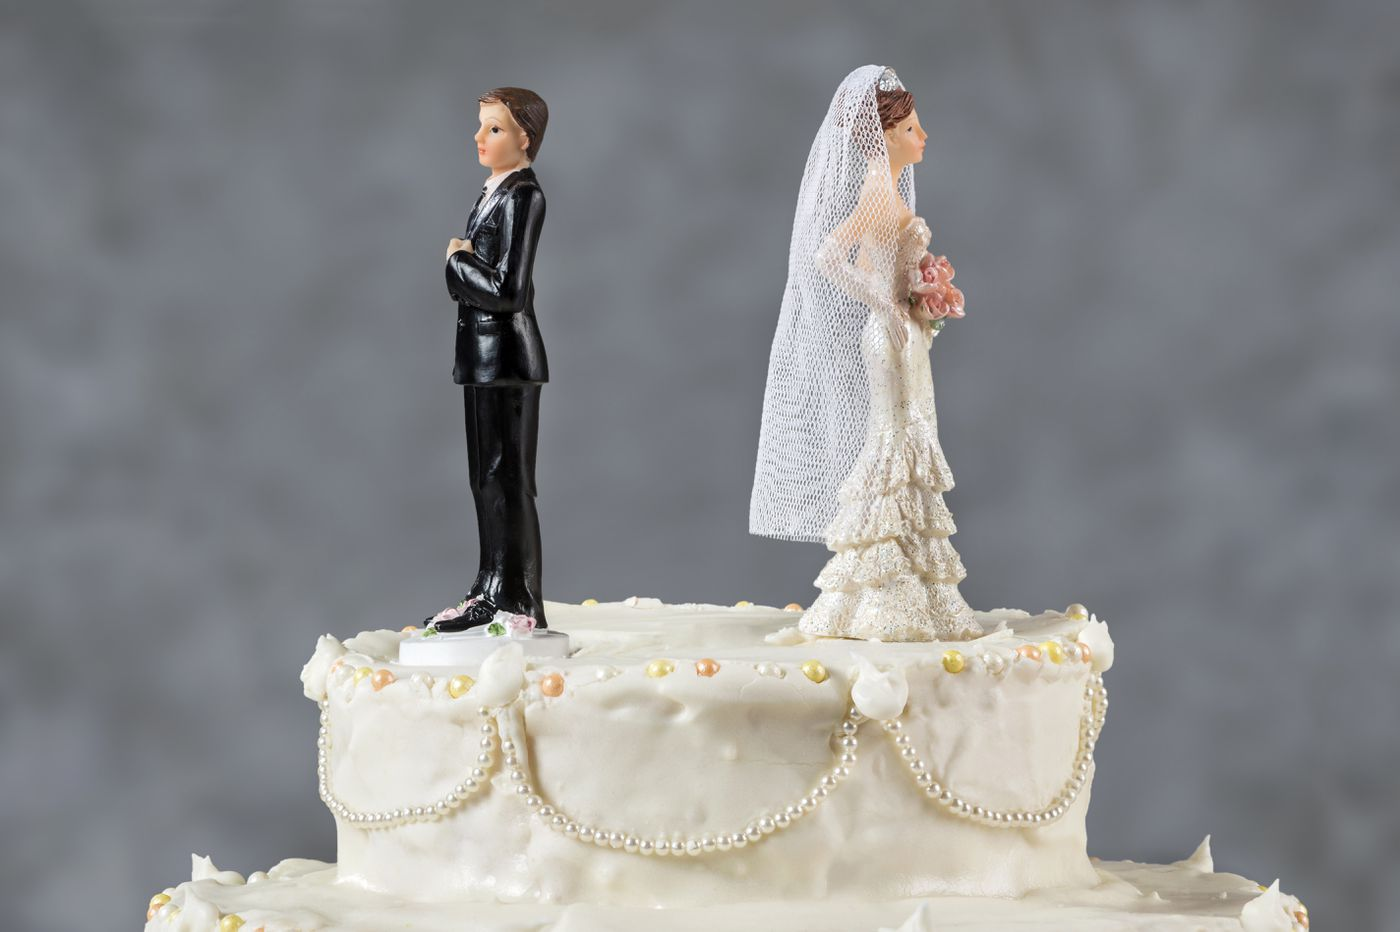 Senior splitting from your spouse? 'Collaborative divorce' is a friendlier, cheaper way